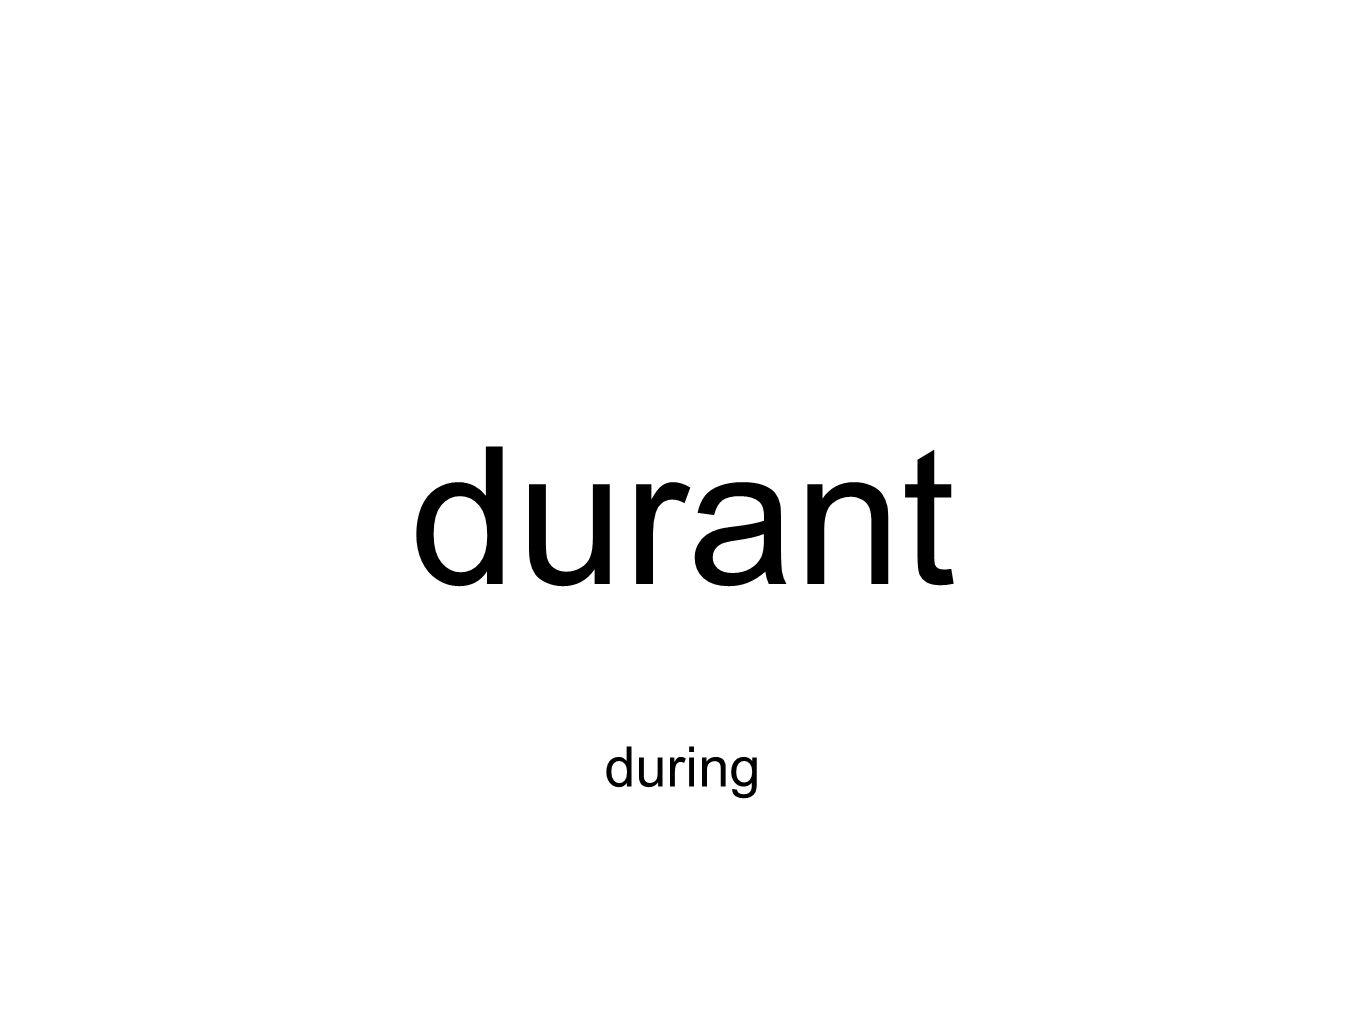 durant during